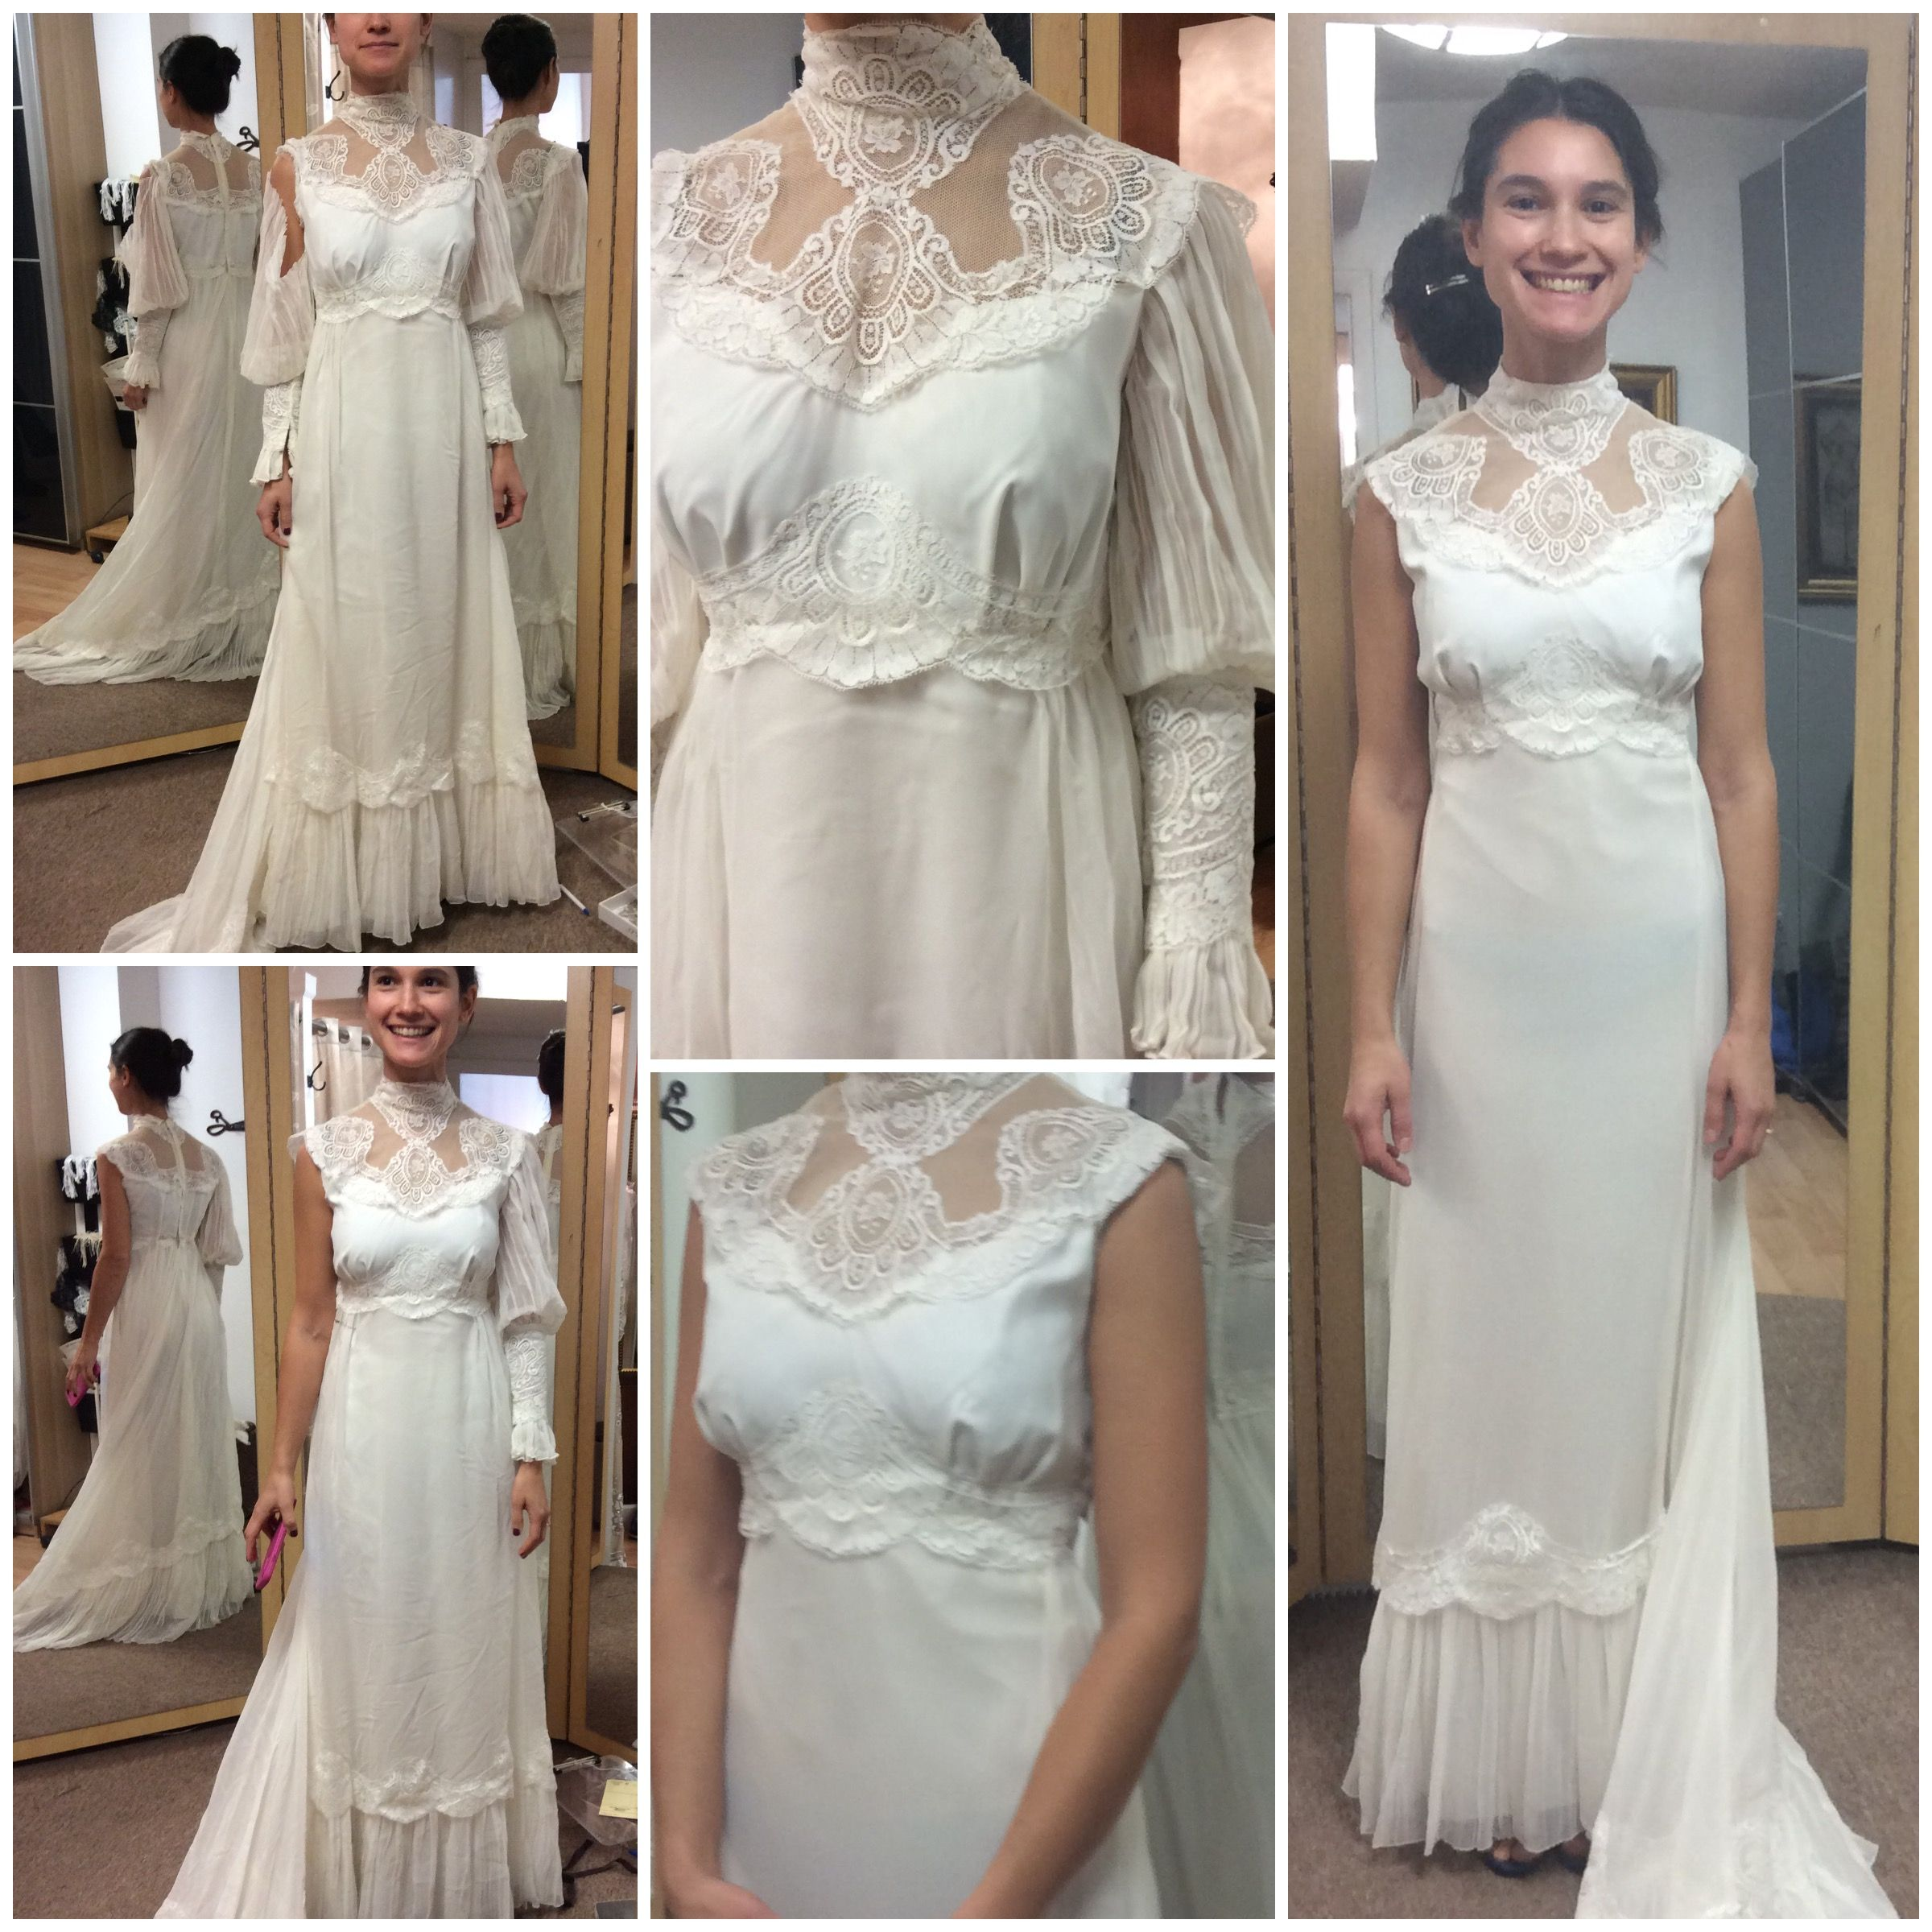 mothers wedding dresses Transformation of the heirloom mother s wedding dress to beautiful up to date daughter s wedding